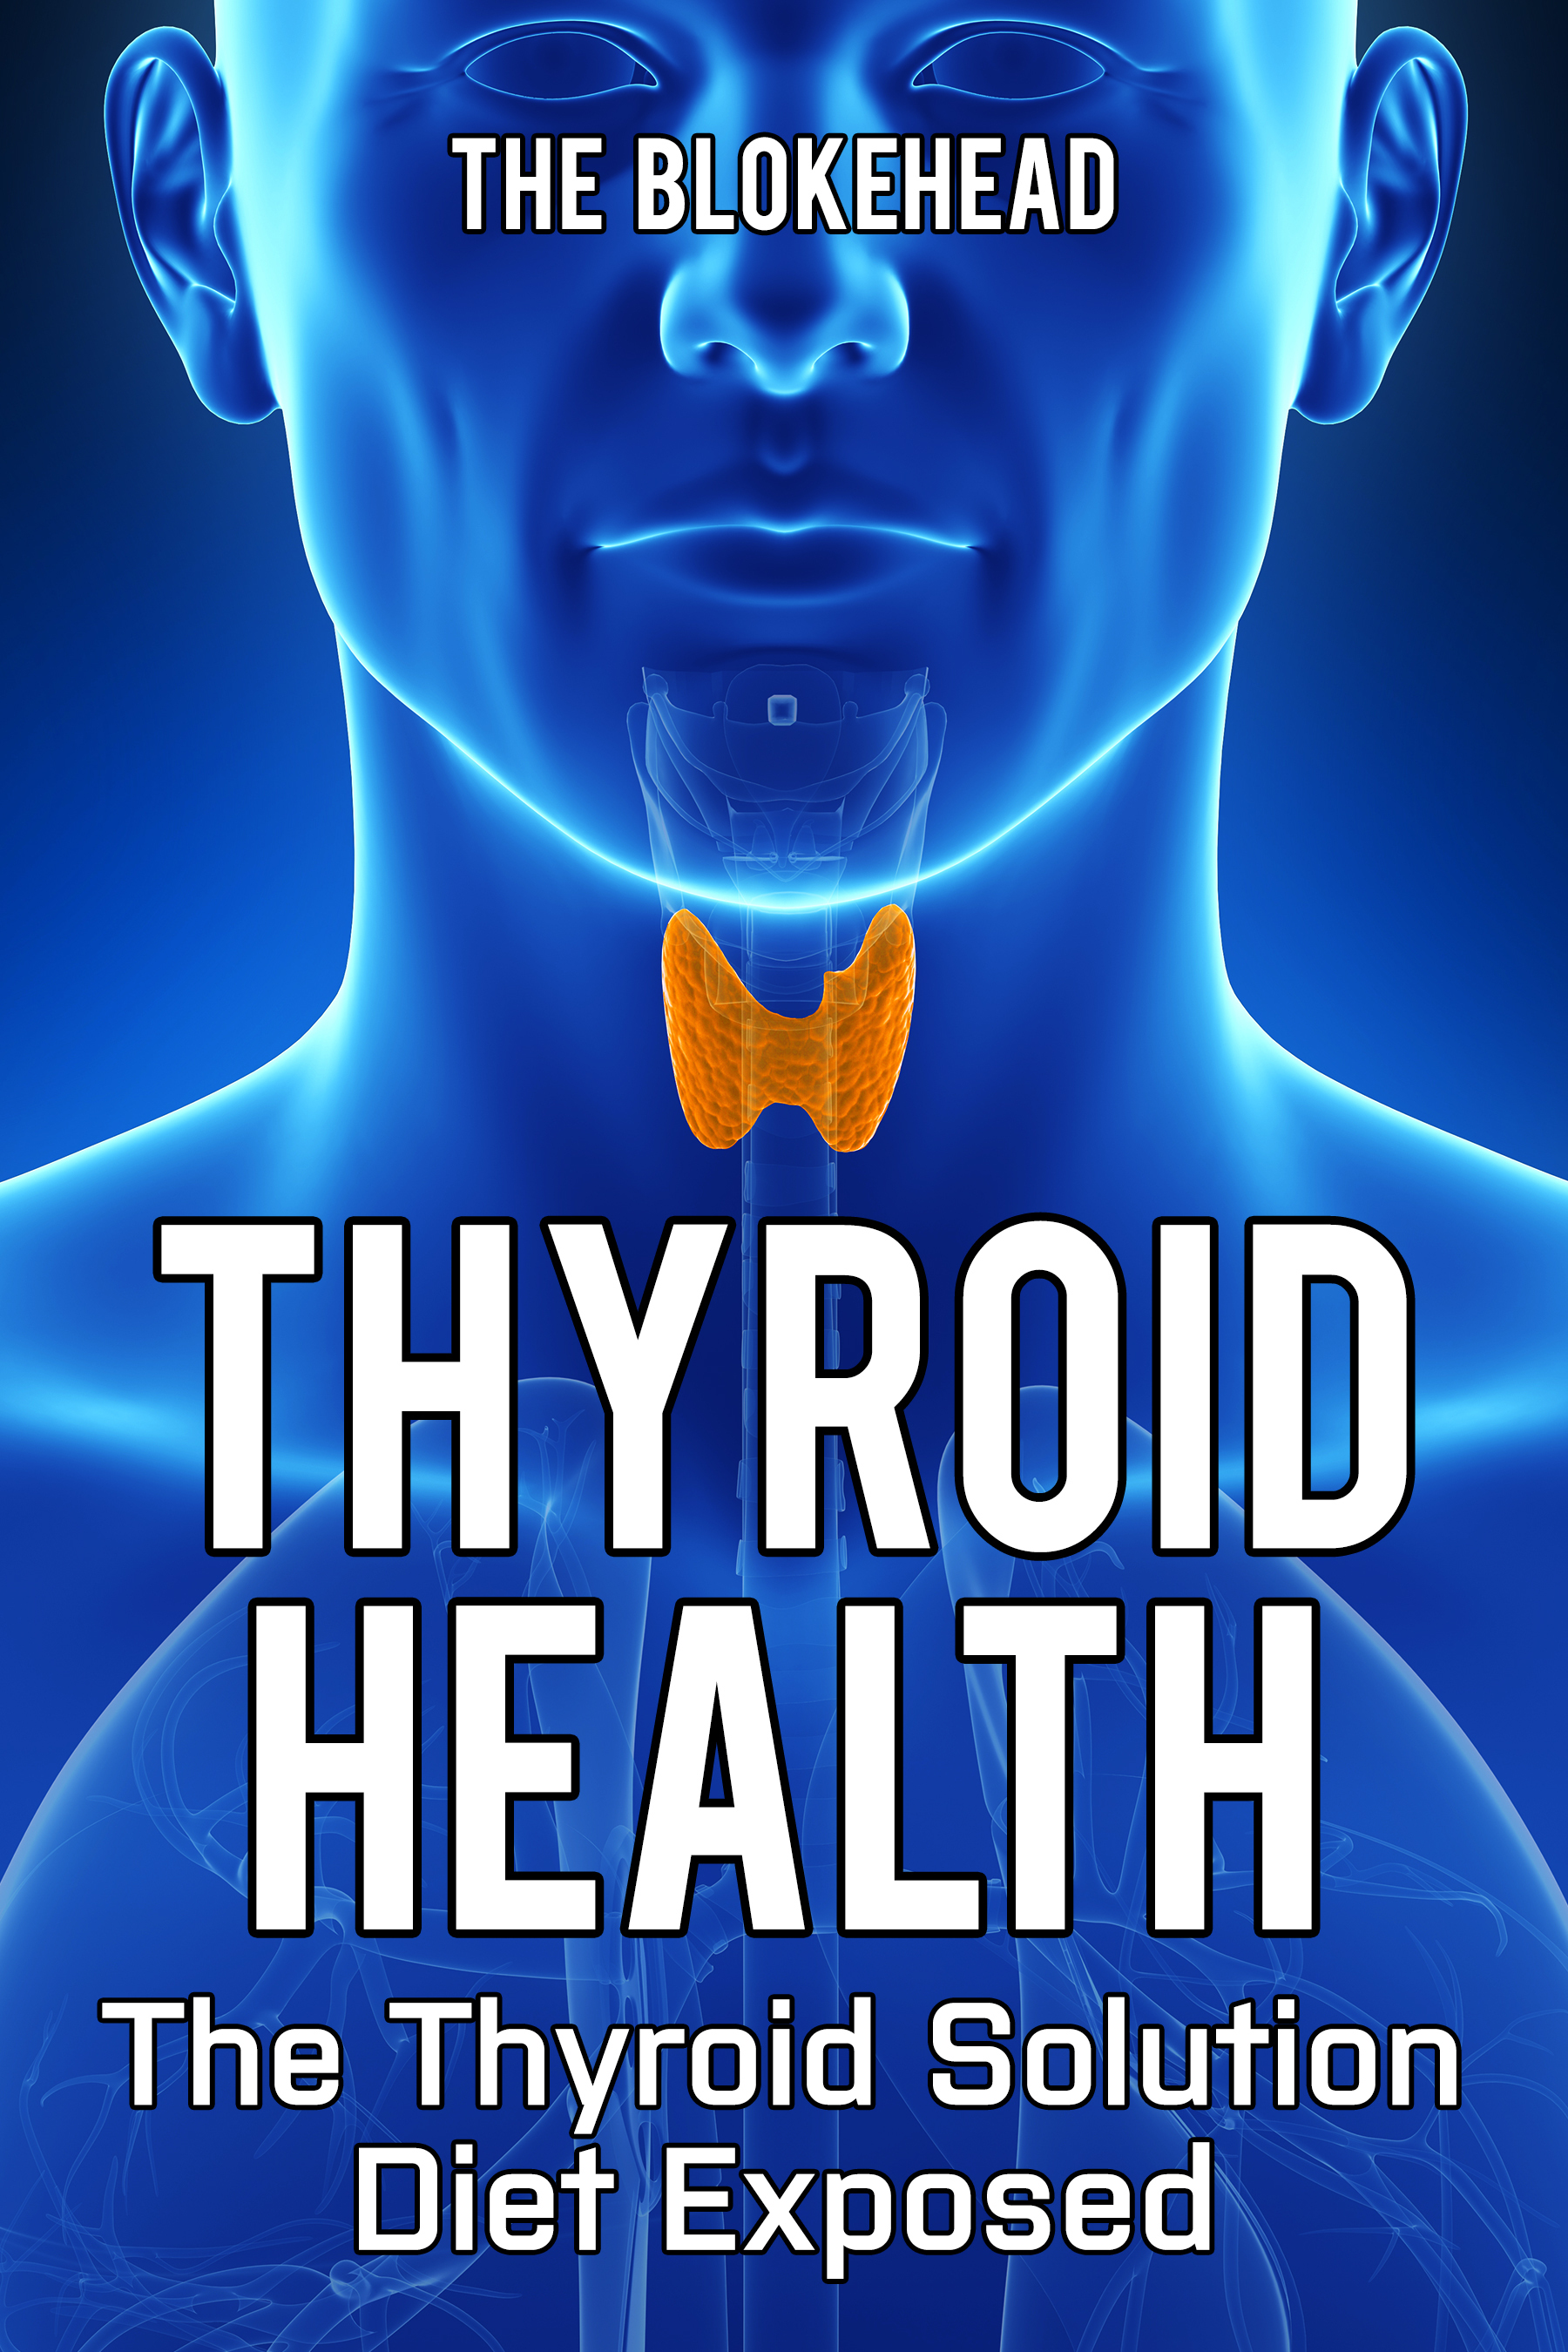 Thyroid Health: The Thyroid Solution Diet Exposed The Blokehead